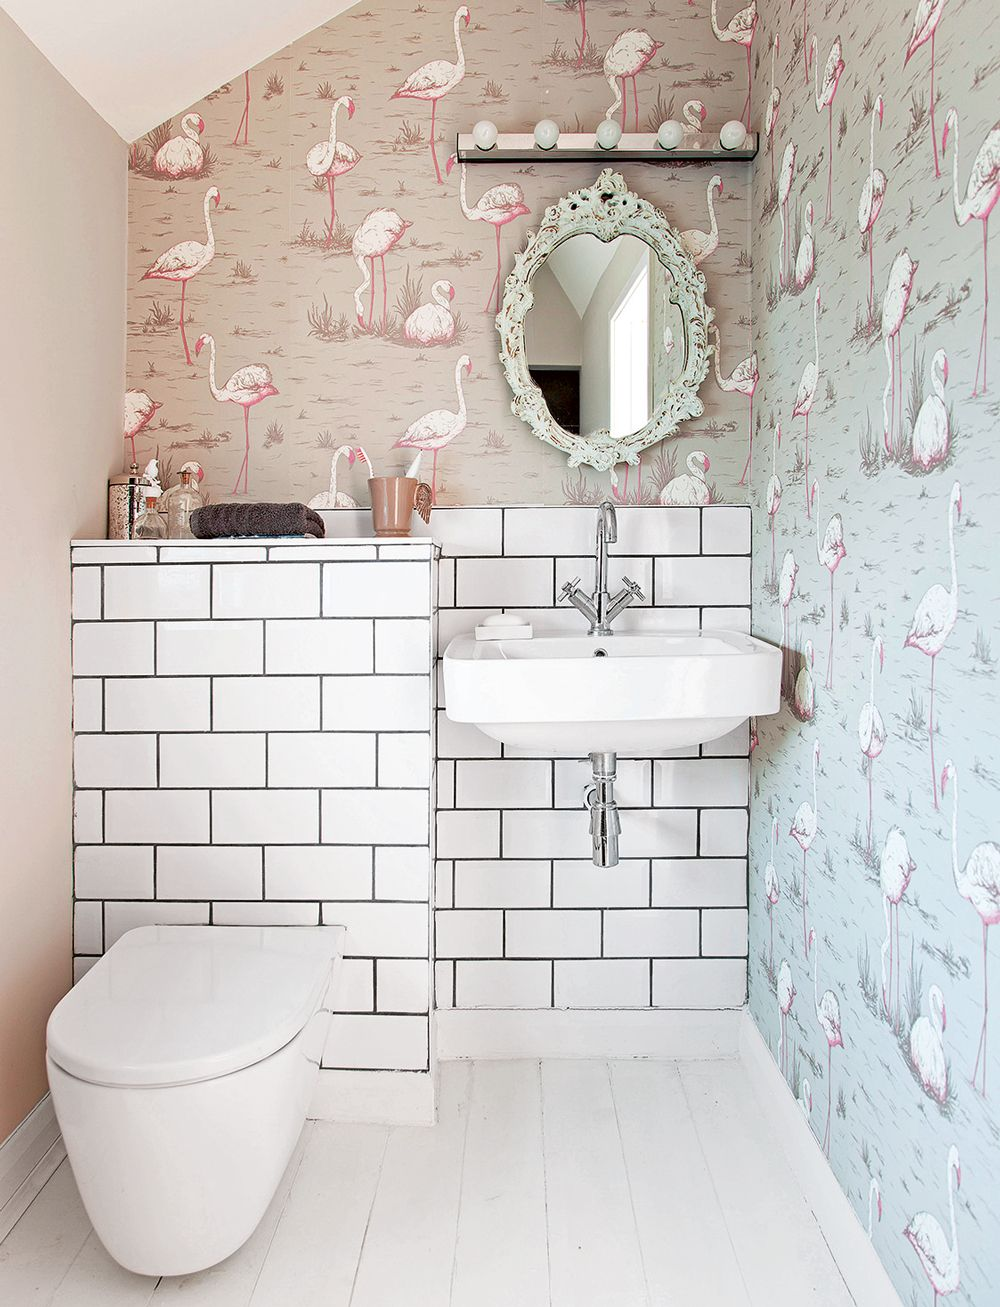 32 Funky Covering Tiles Ideas Decortez Downstairs Toilet Small Toilet Room Small Bathroom